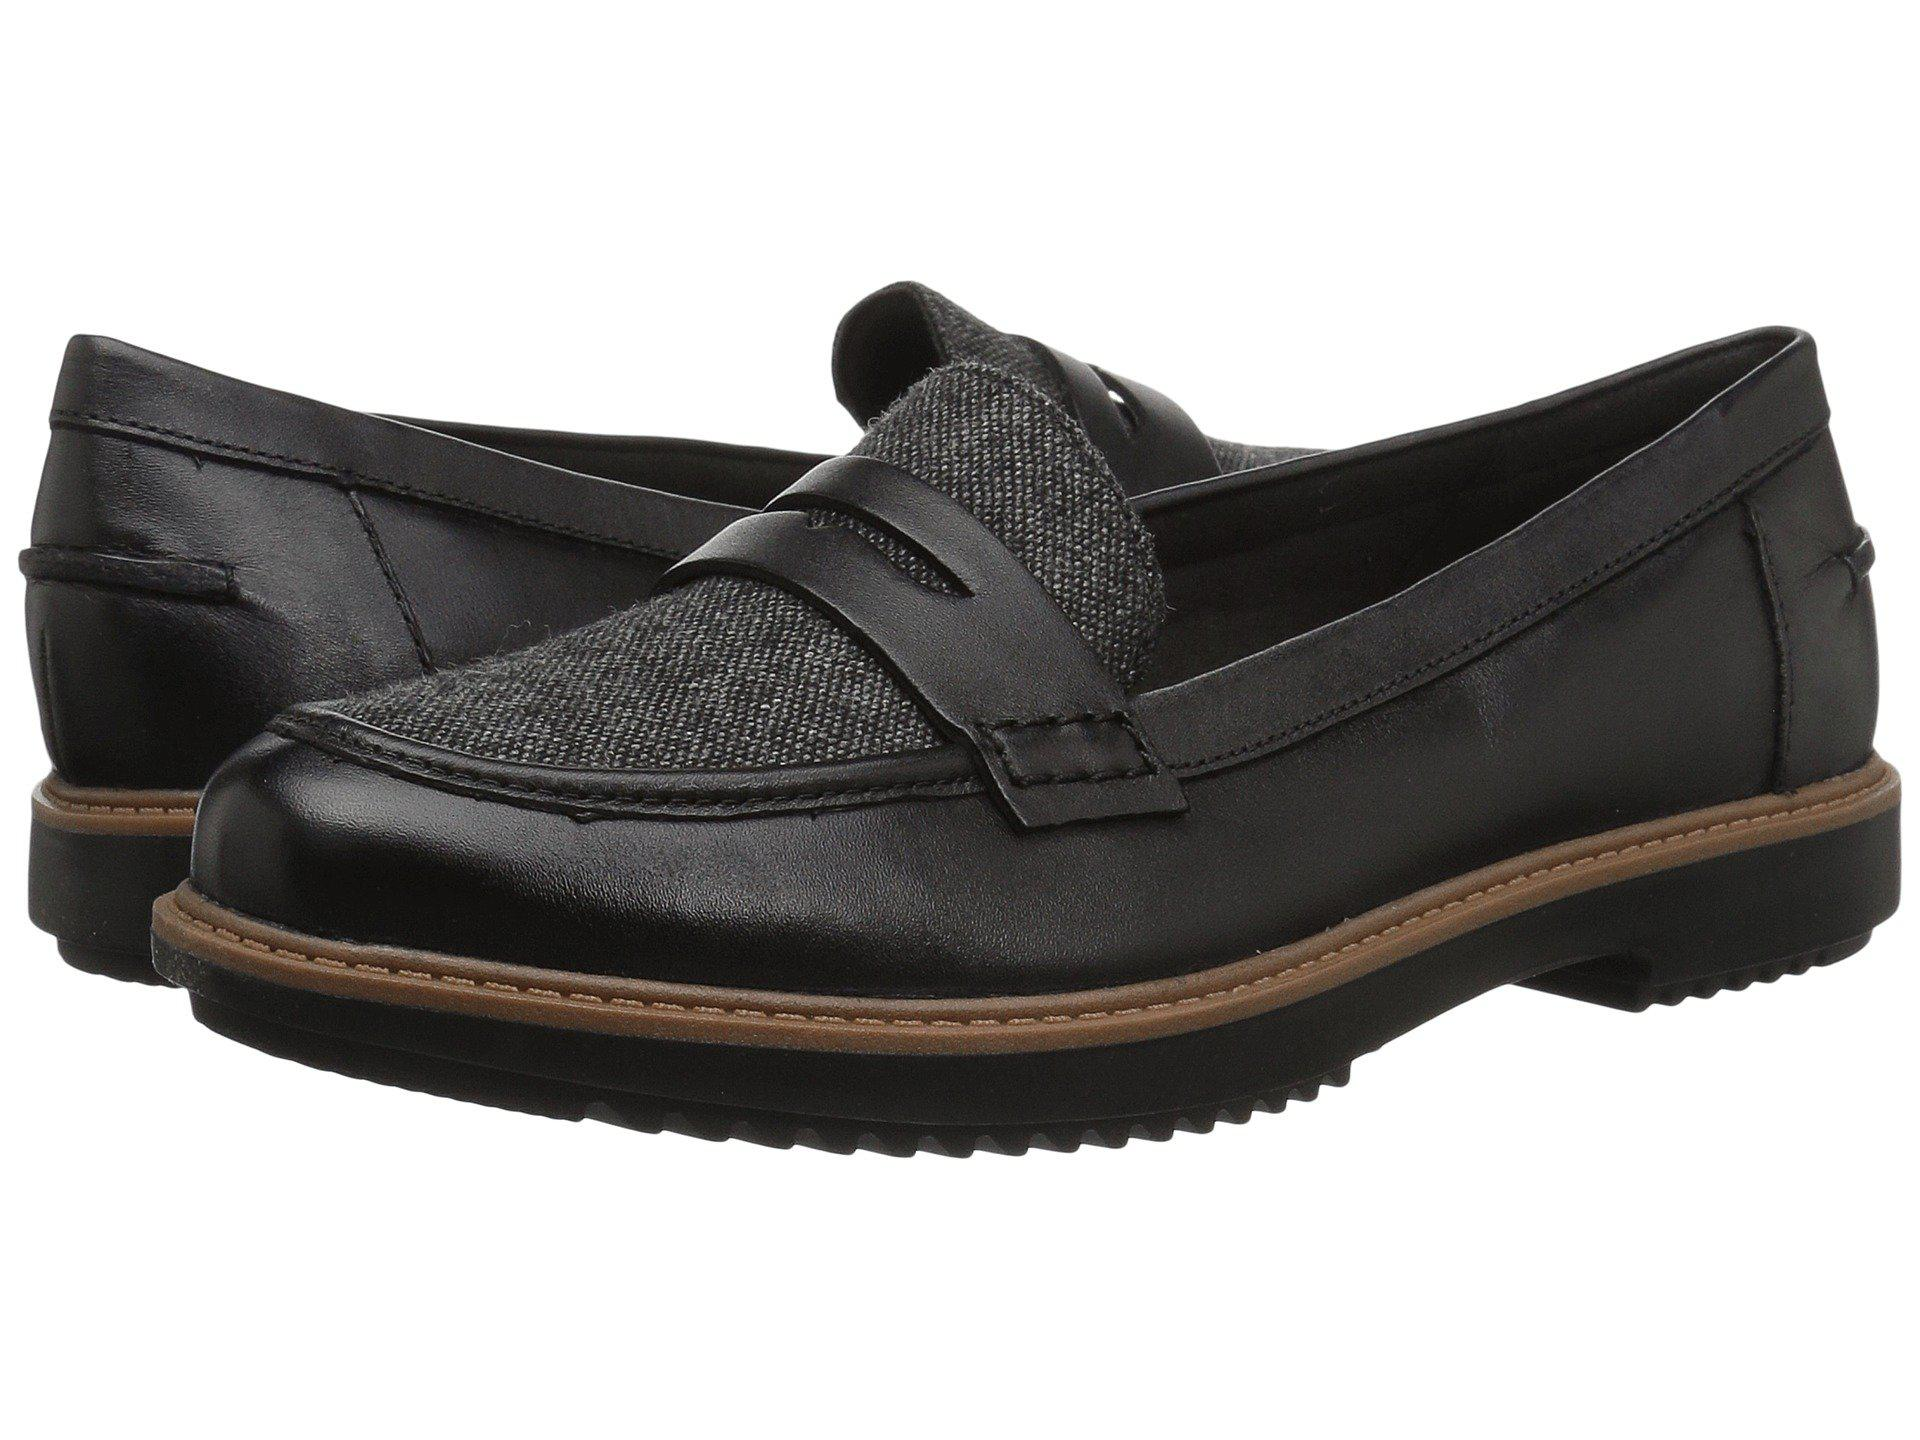 696b99e460e Lyst - Clarks Raisie Eletta (black Leather) Women s Slip On Shoes in ...